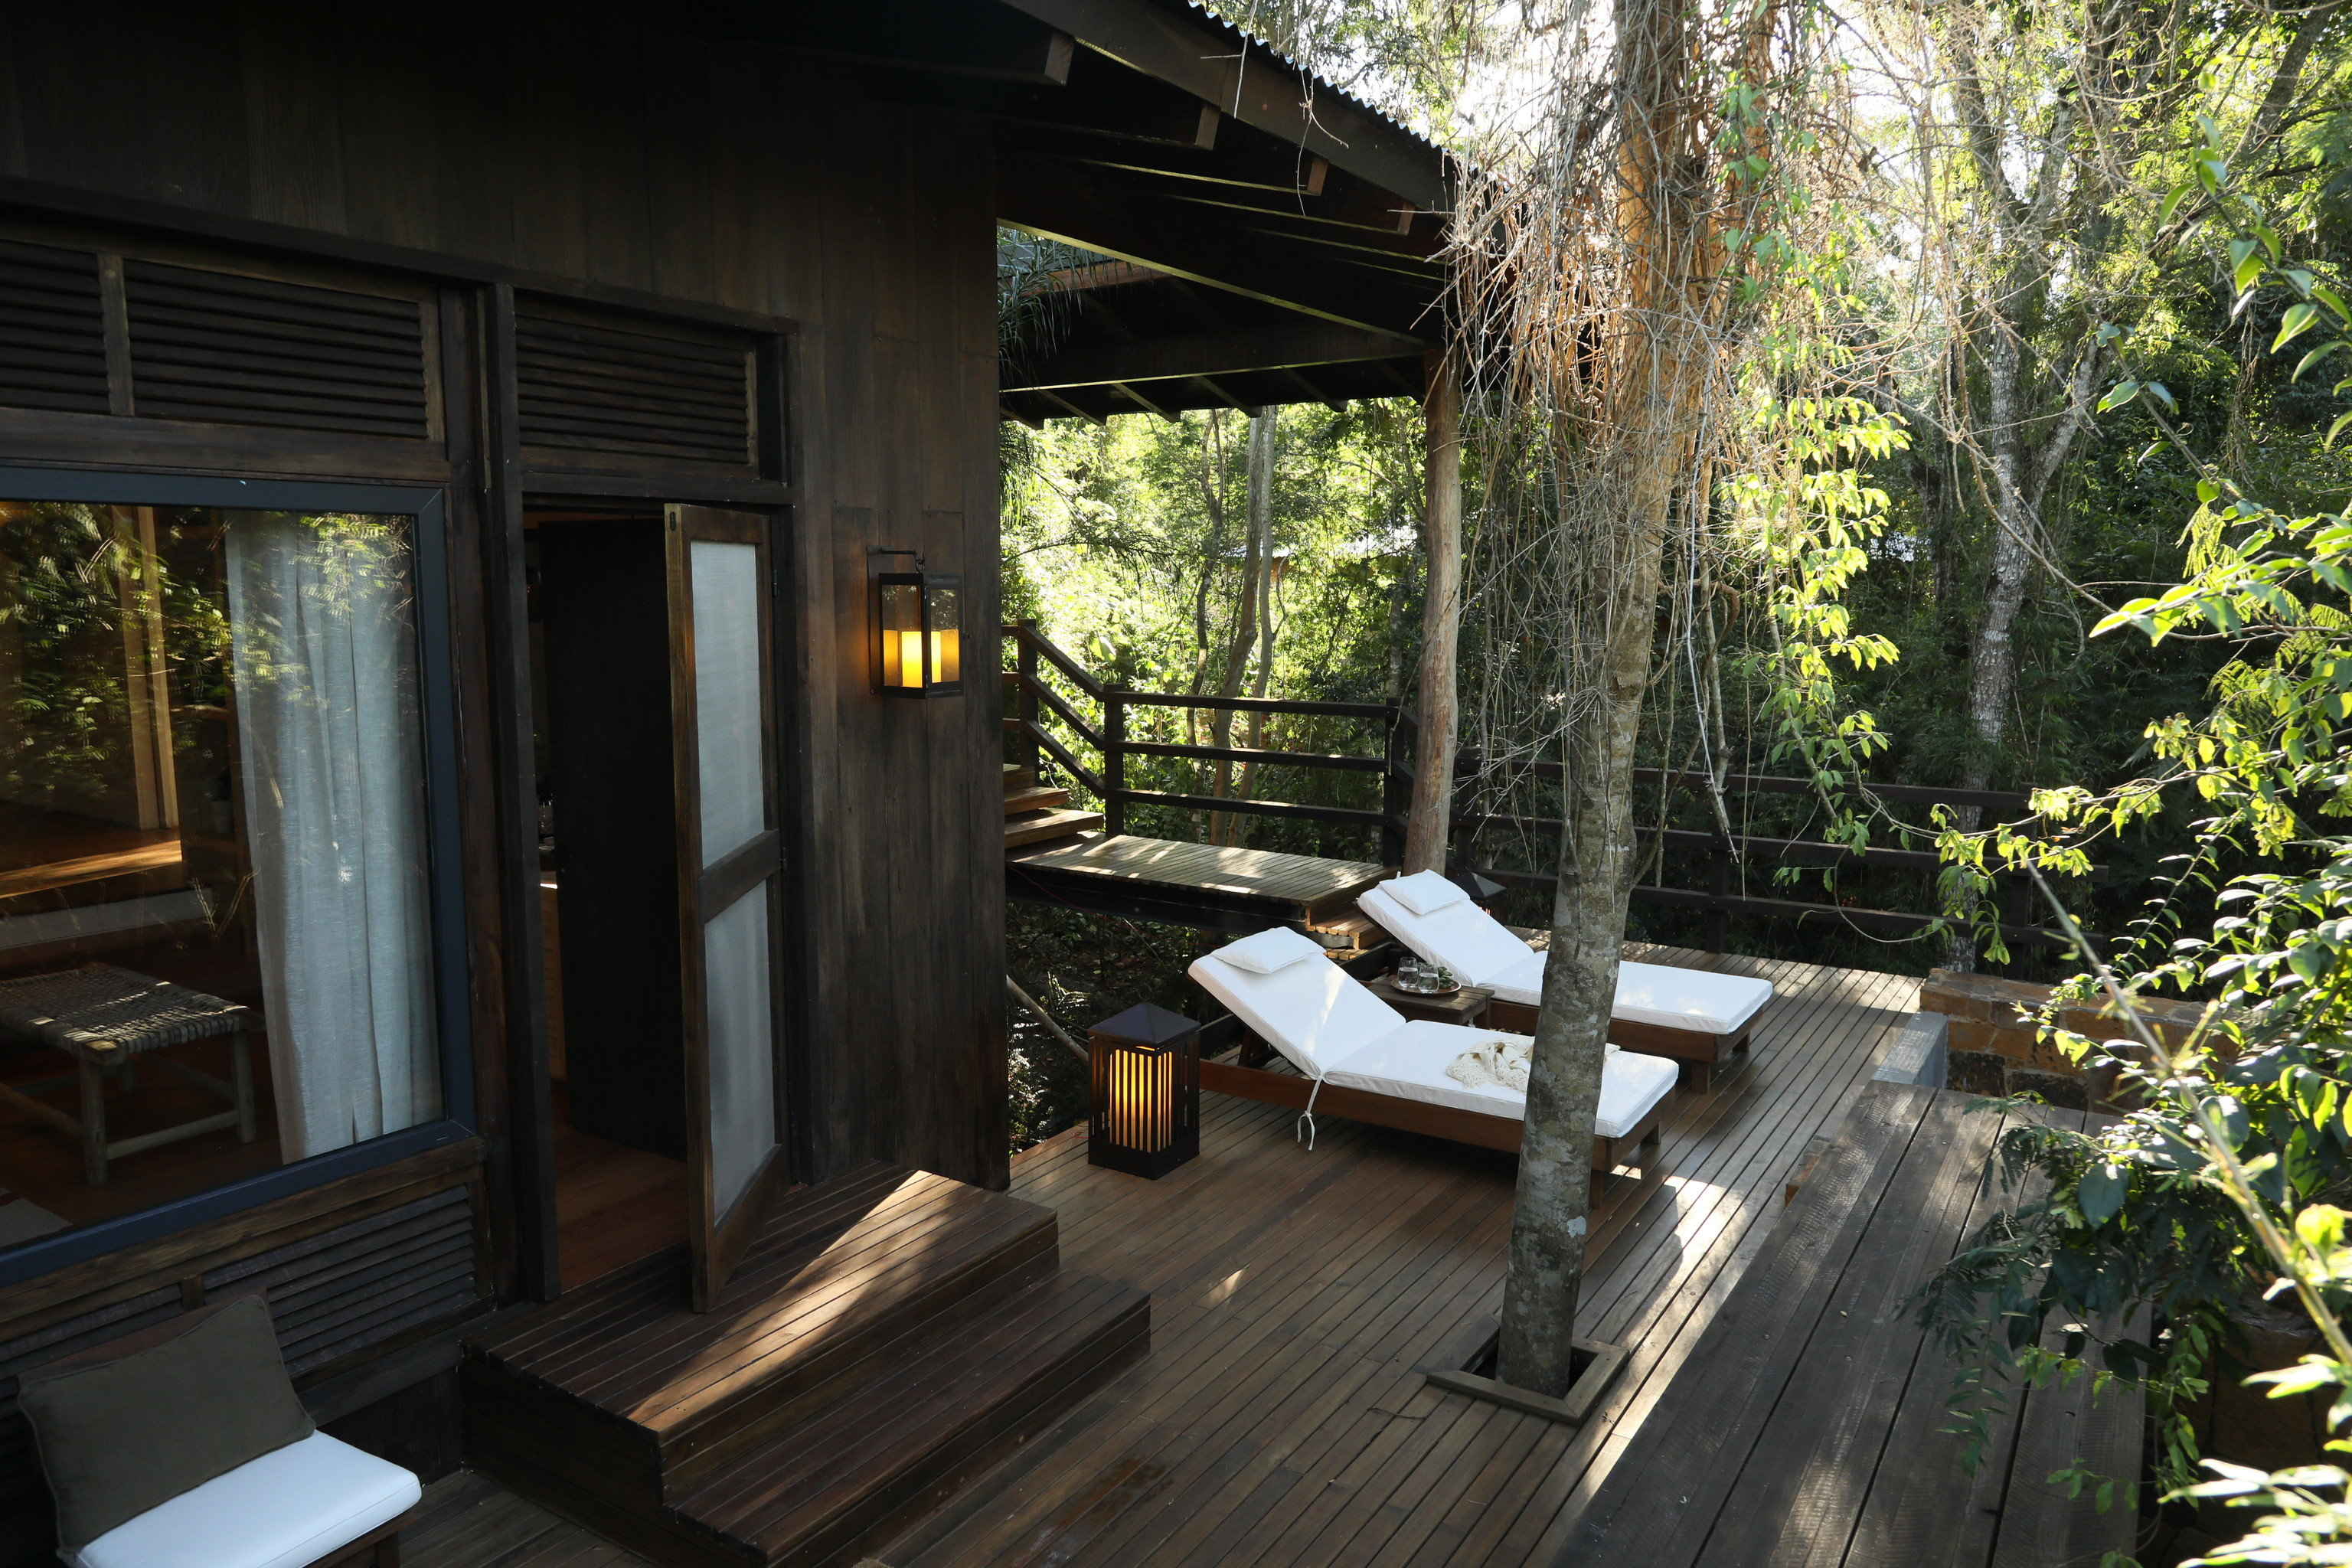 Boutique Hotels Hotels Luxury Travel Outdoors + Adventure tree building property house Architecture plant cottage porch outdoor structure home real estate backyard interior design window Deck wood furniture area stone